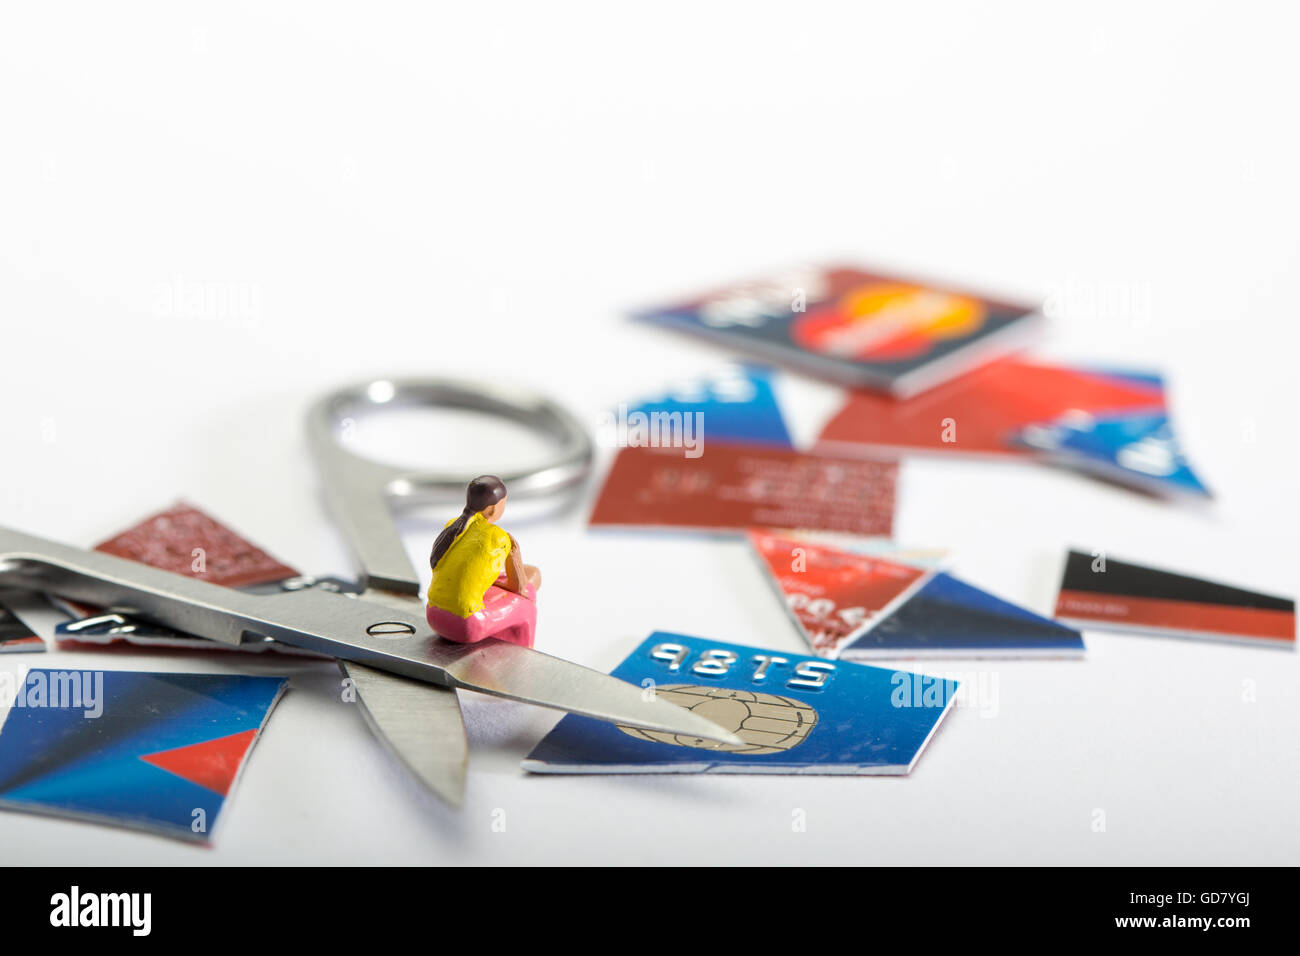 Credit Card dept concept image of a female figure sat with a cut up credit card and a pair of scissors - Stock Image